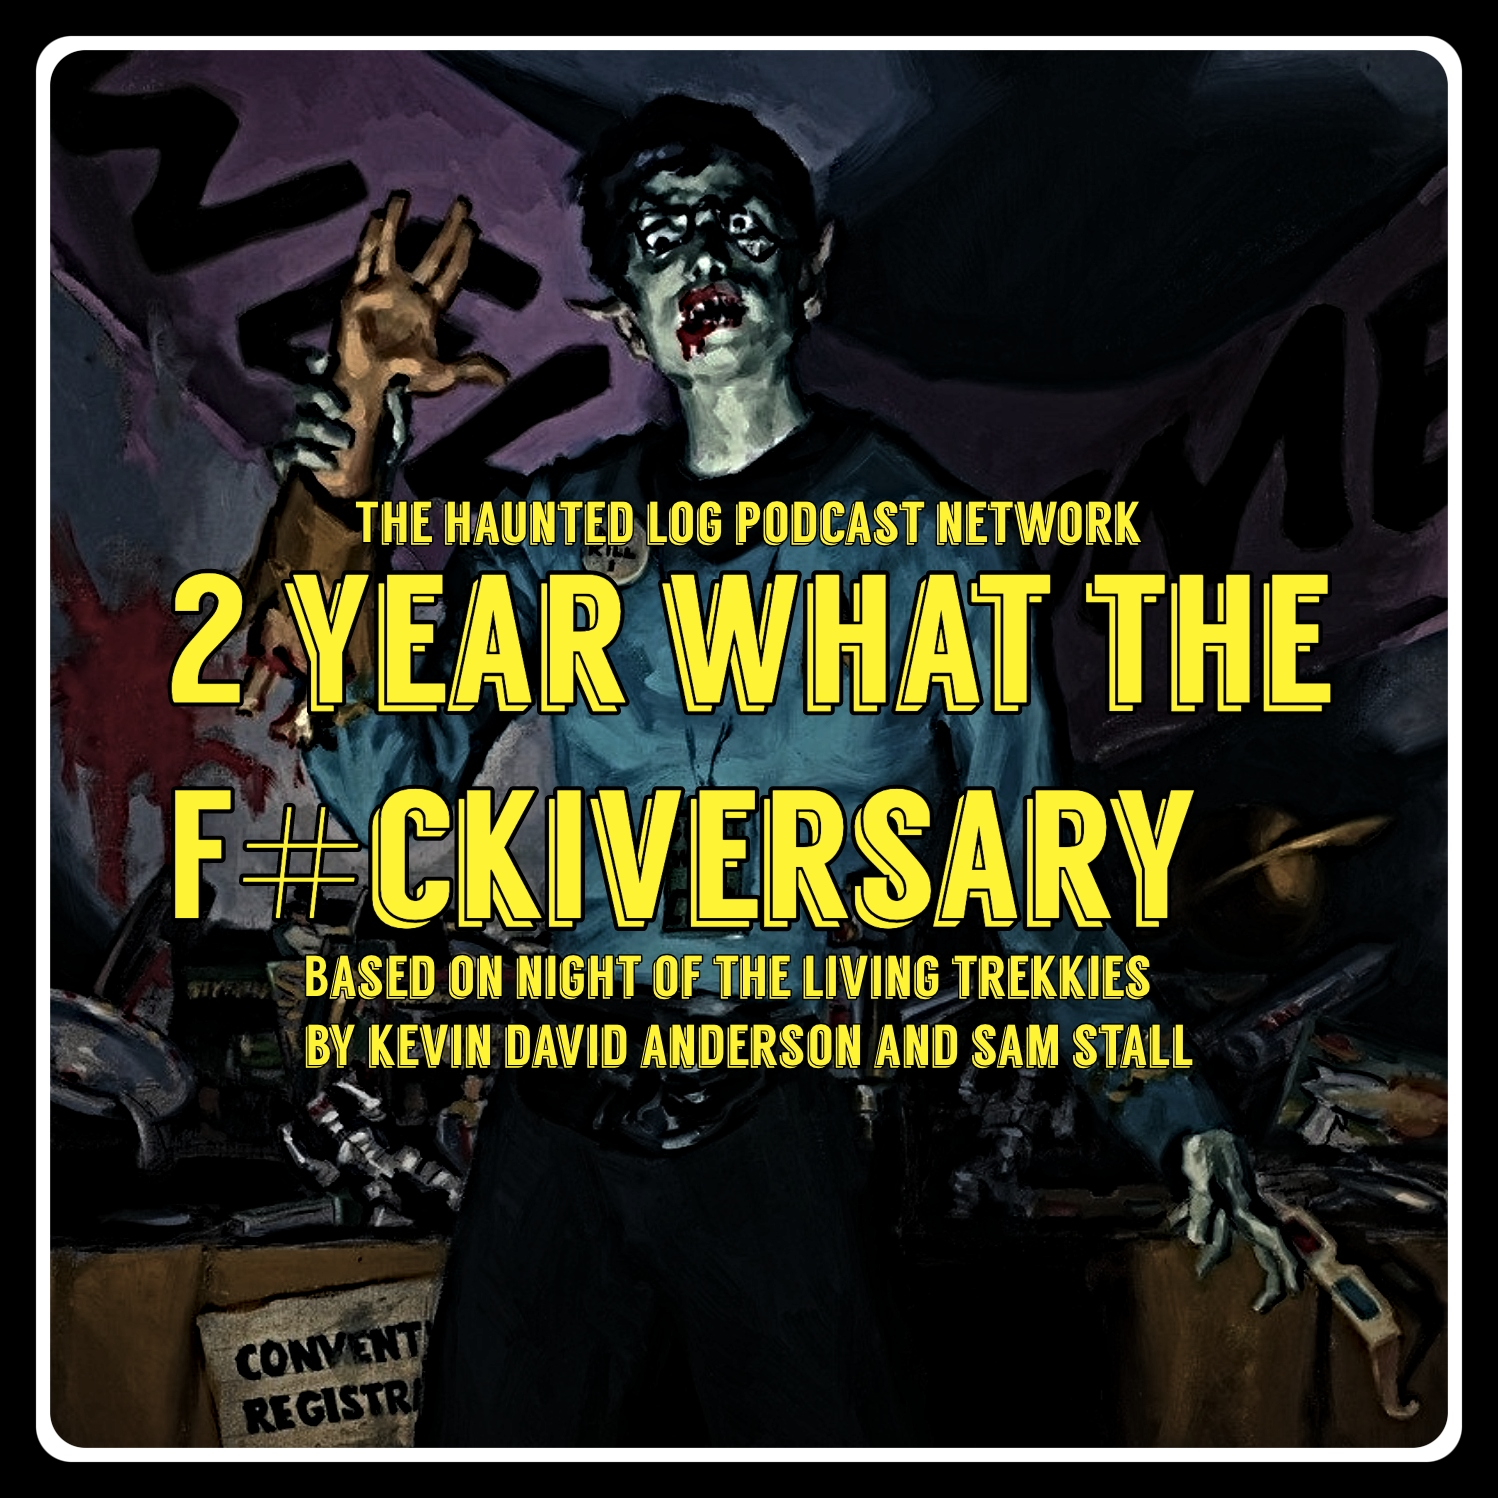 It's Our Two Year Anniversary Special!